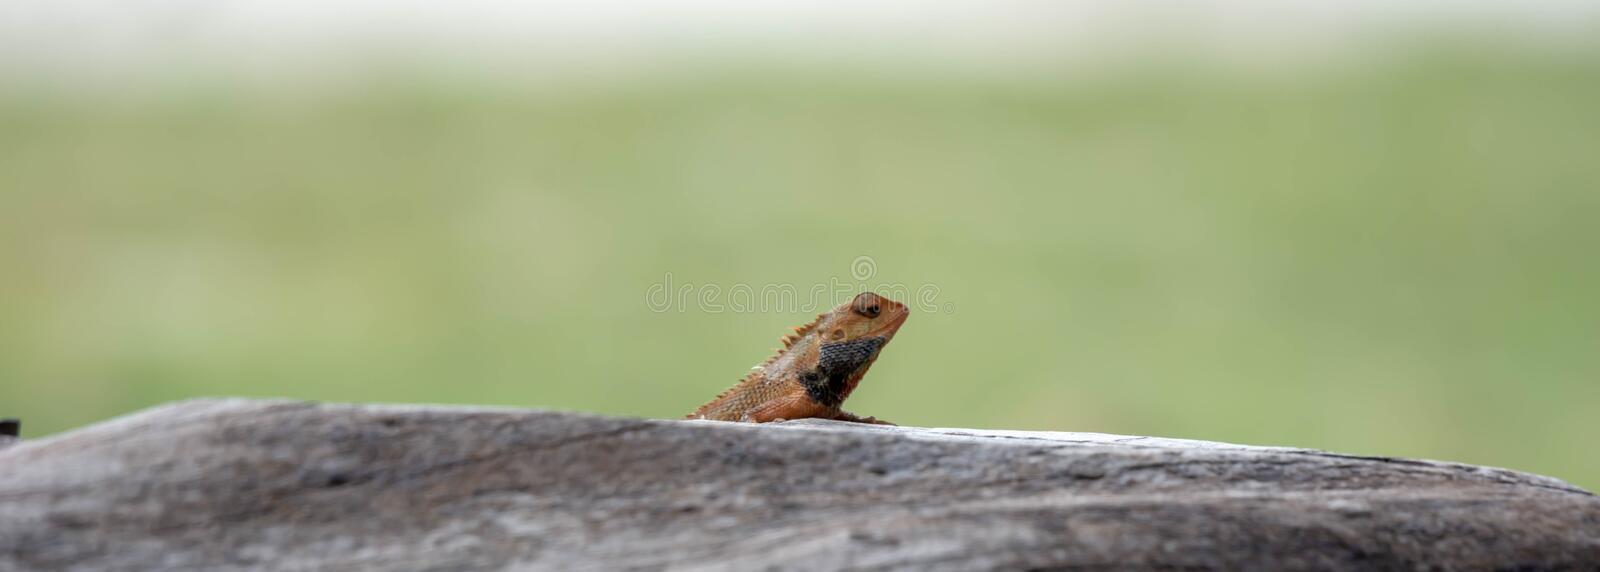 Indian Chameleon on a cement railing in a park with green blurry background. During day royalty free stock photo